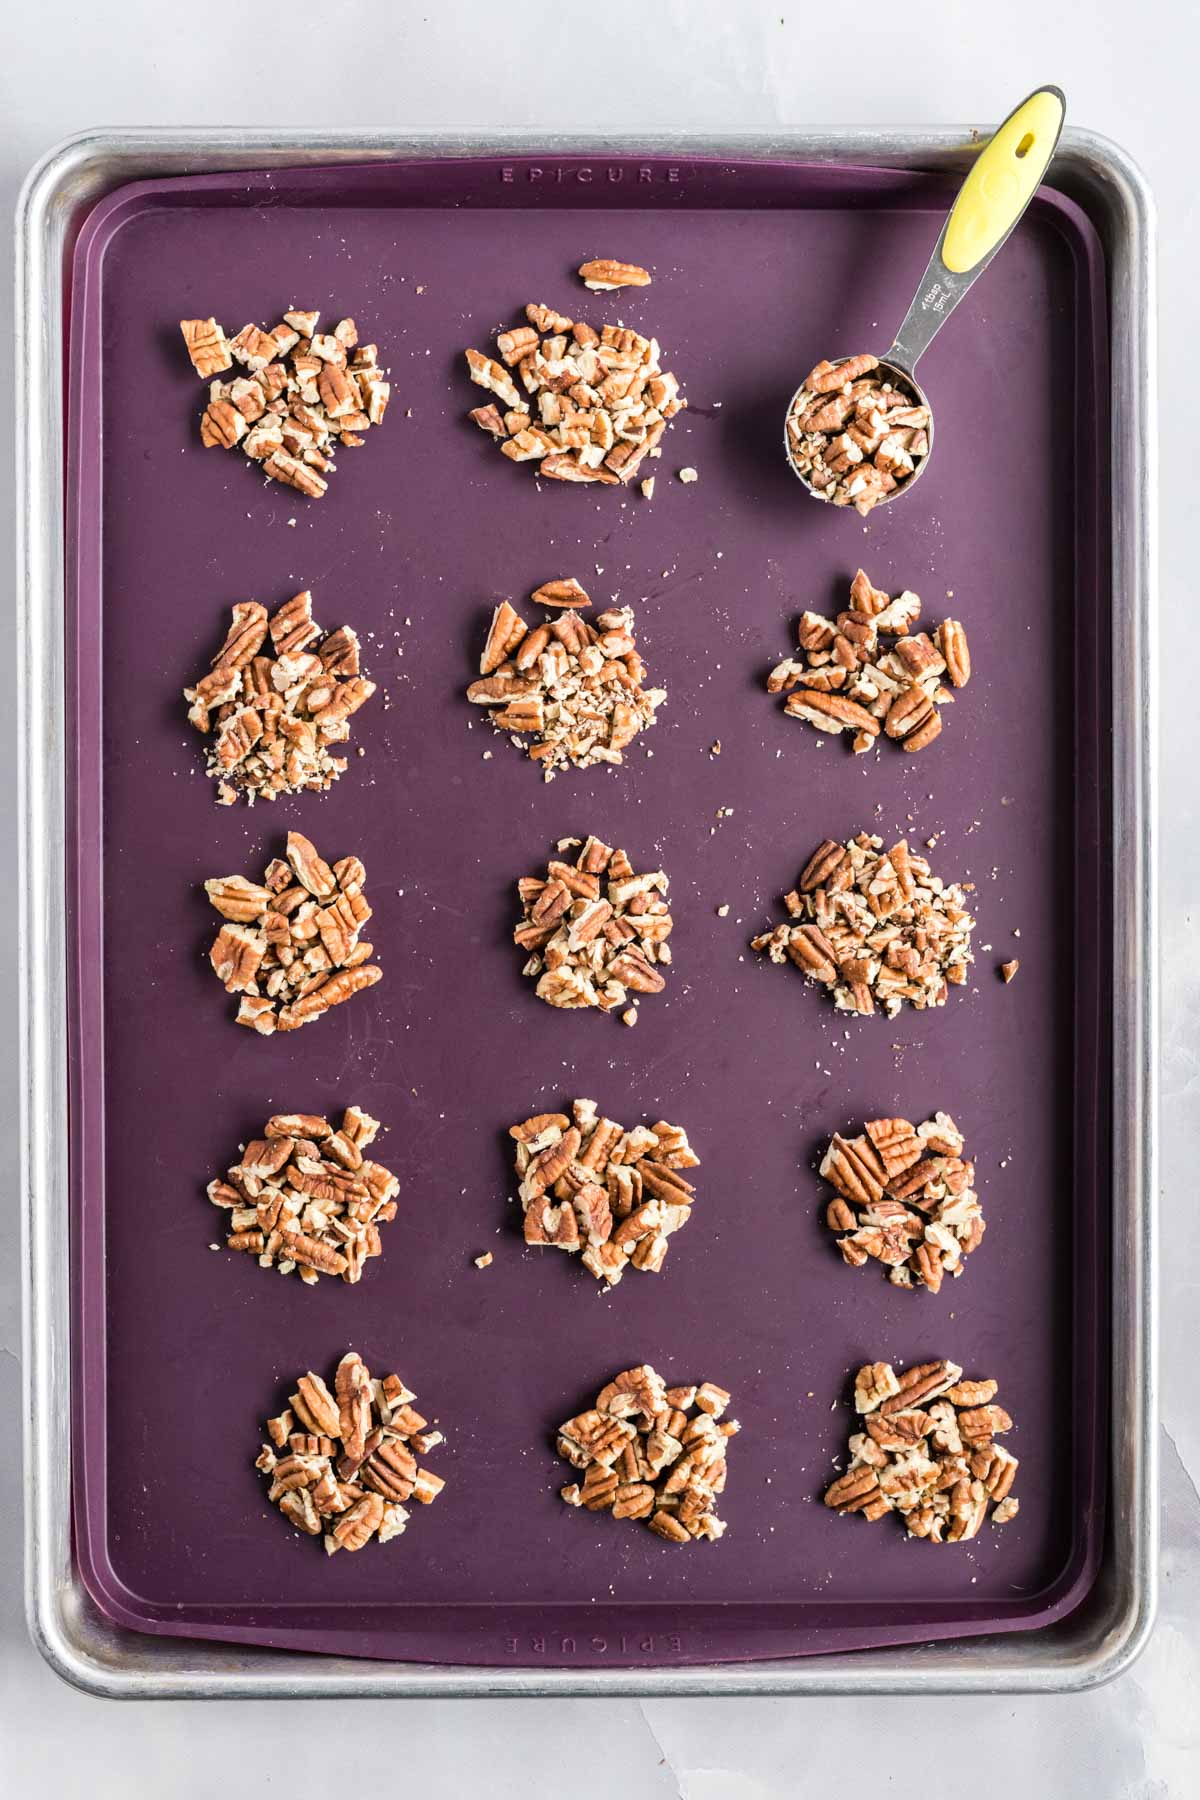 Pecans in one tablespoon piles on a baking sheet lined with a silicone mat.